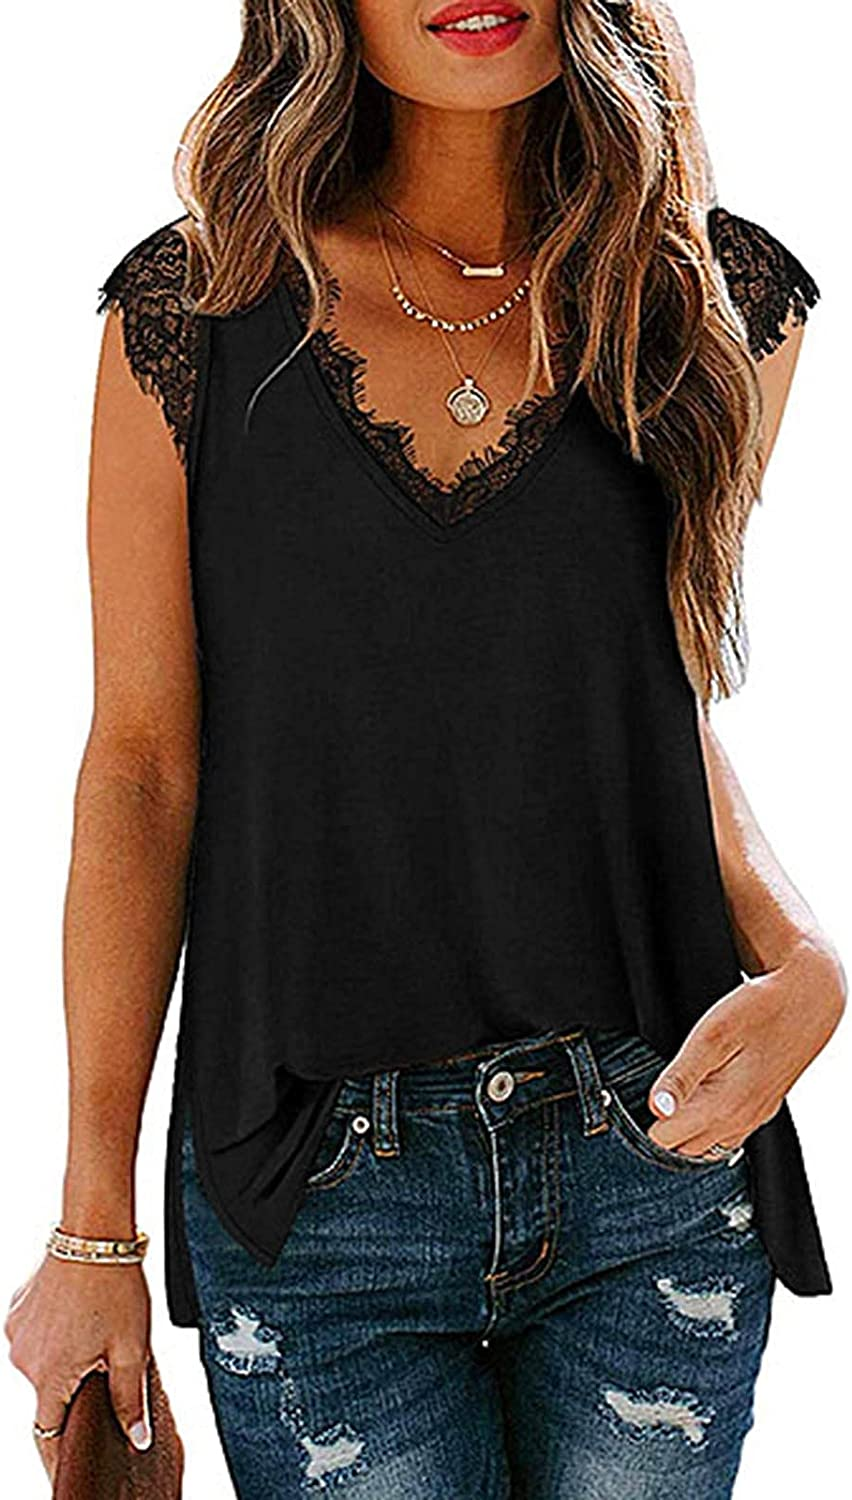 Sleeveless Tops for Women Summer,Womens V Neck Basic Lace Lace Trim Cami Shirt Summer Sleeveless Casual Top